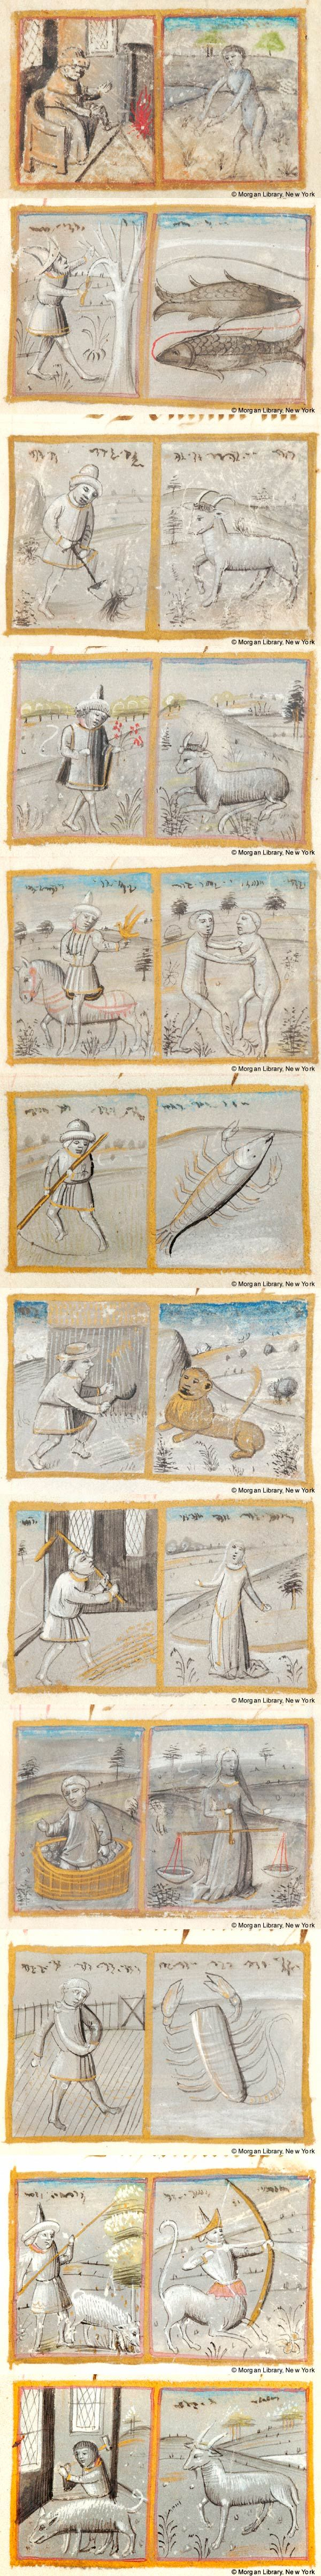 Signs of the Zodiac | Book of Hours | Belgium, perhaps Bruges or Valenciennes | ca. 1470 | The Morgan Library & Museum